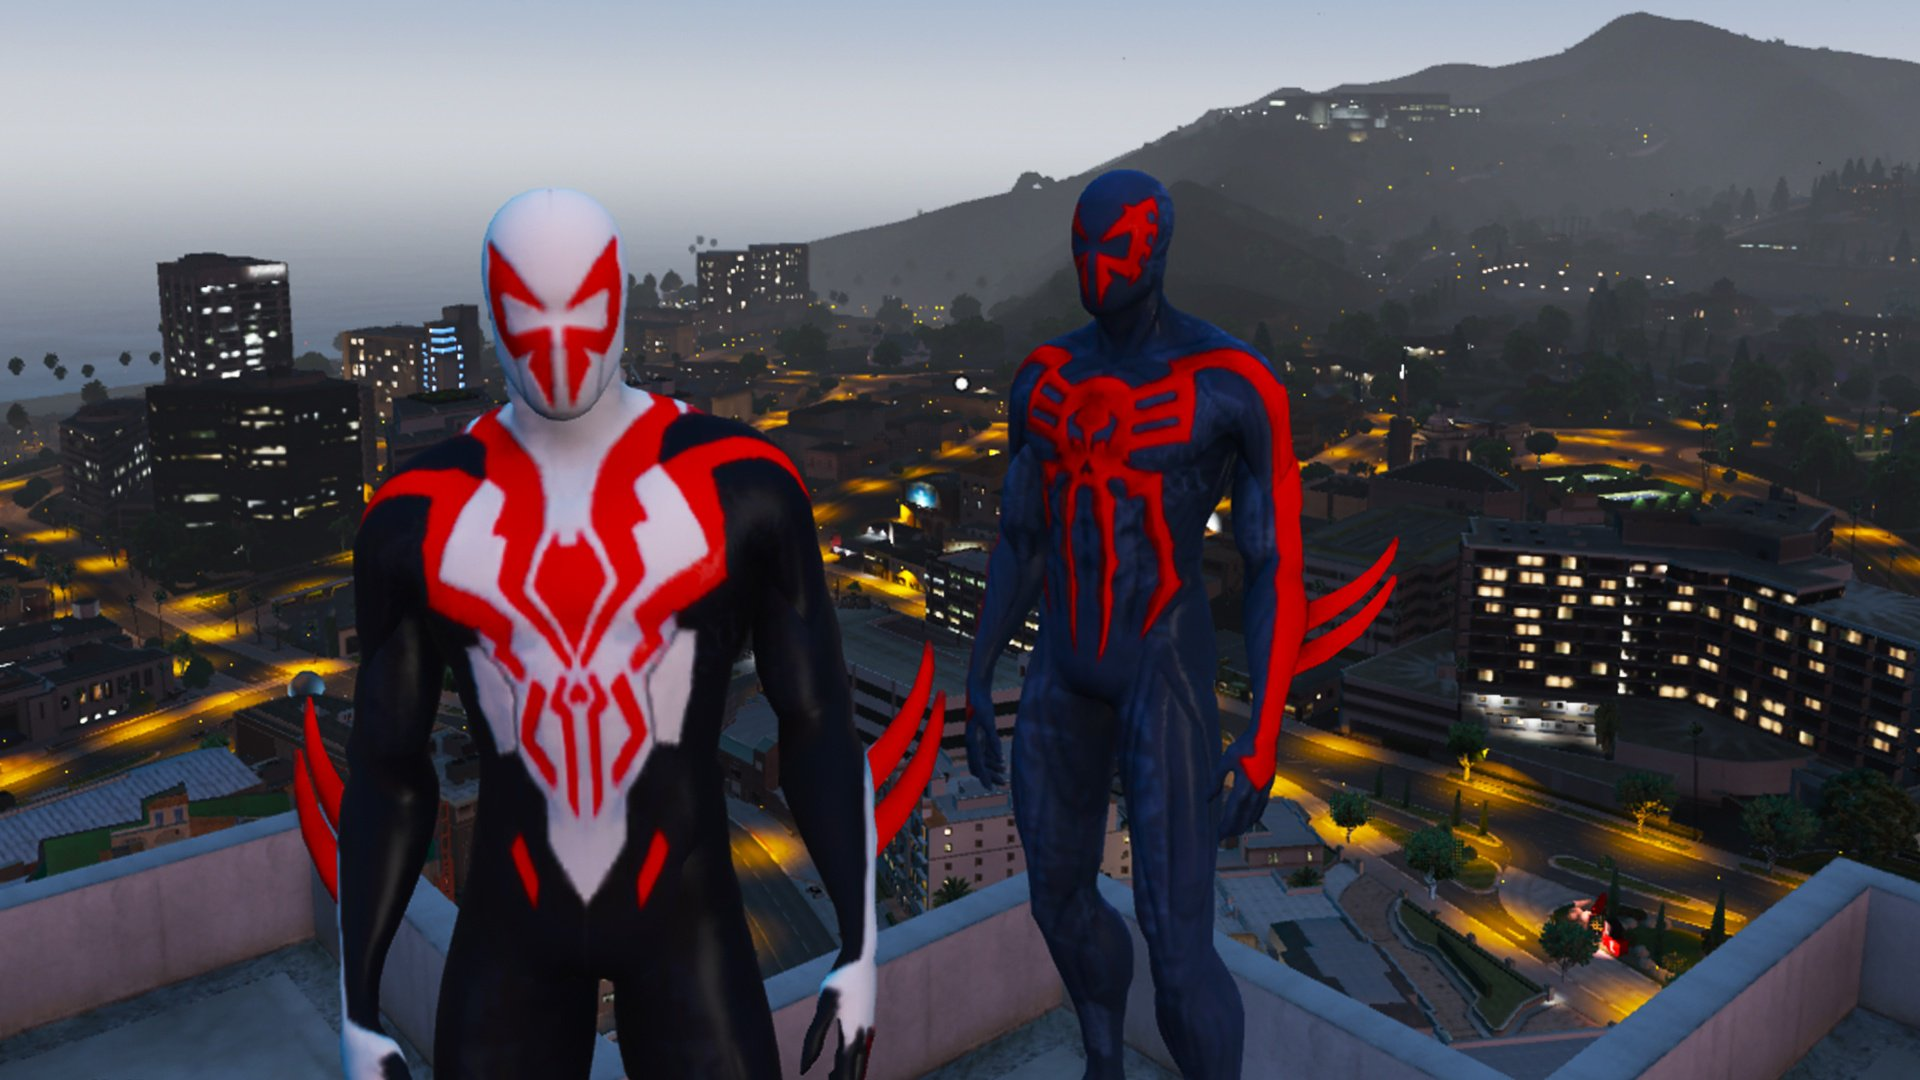 Hd Car Wallpapers For Laptop Free Download Spiderman 2099 Wallpapers